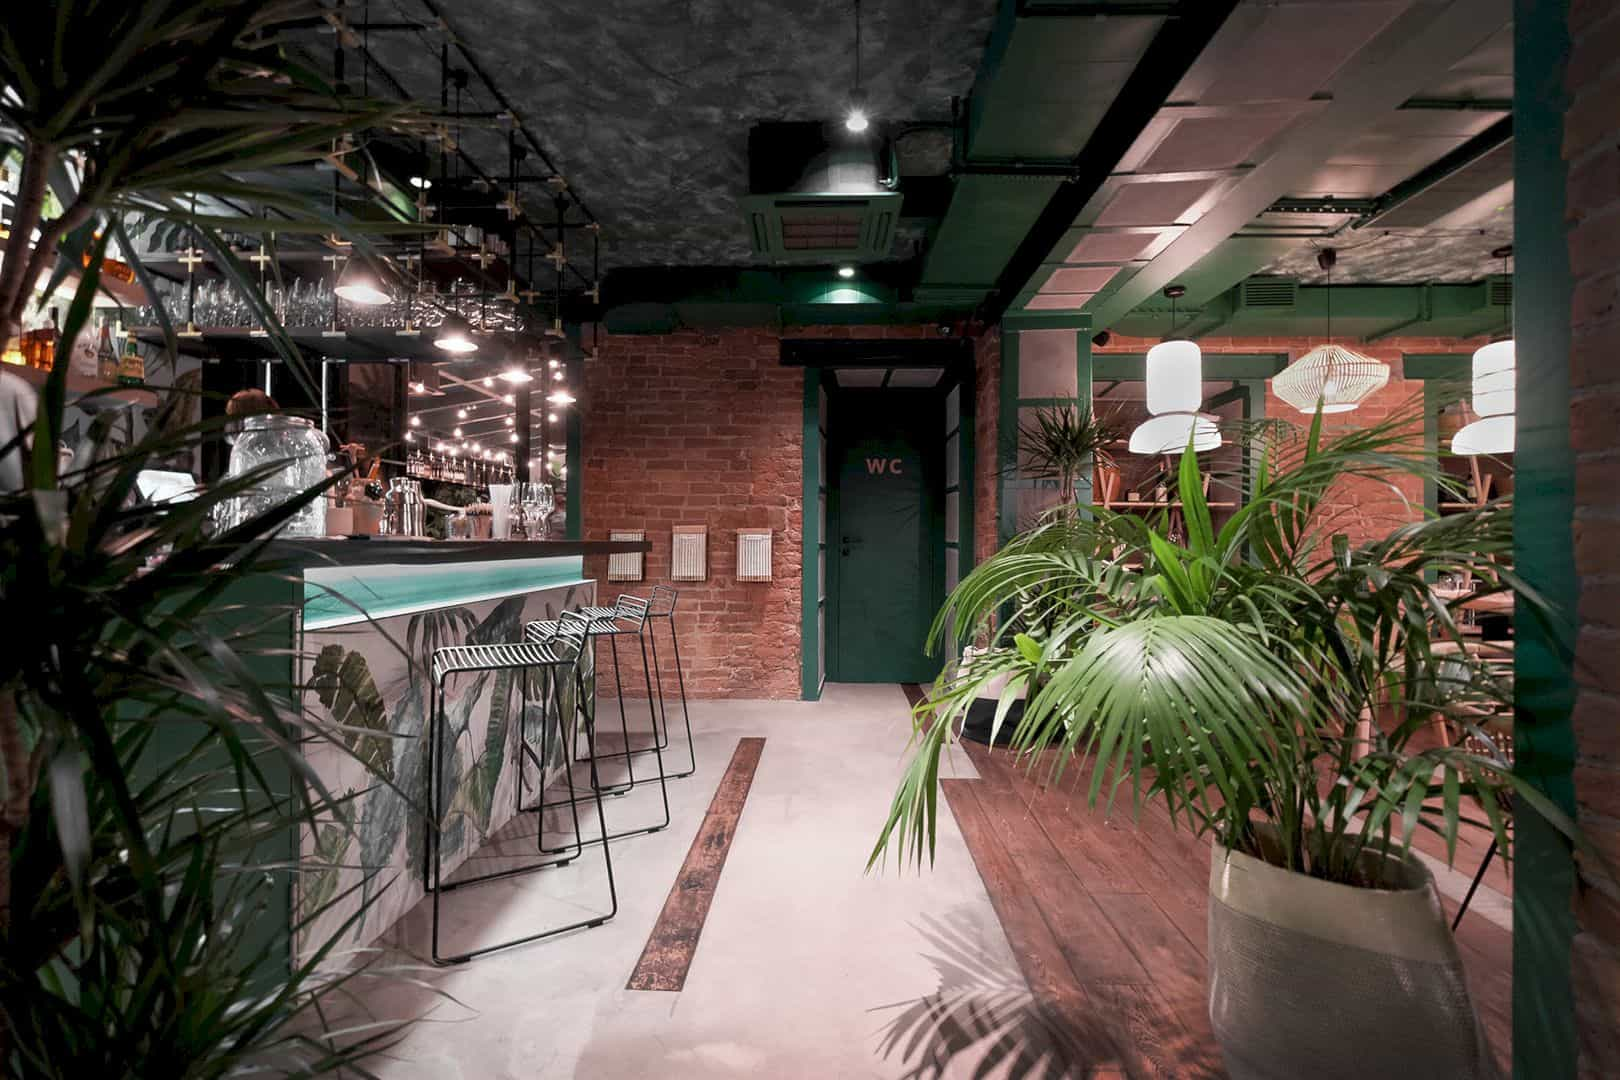 JUNGLE Cafe: Natural Interior Design of A Cafe with Greenery ... on natural house paint colors, natural lighting interiors, natural cabin interiors,